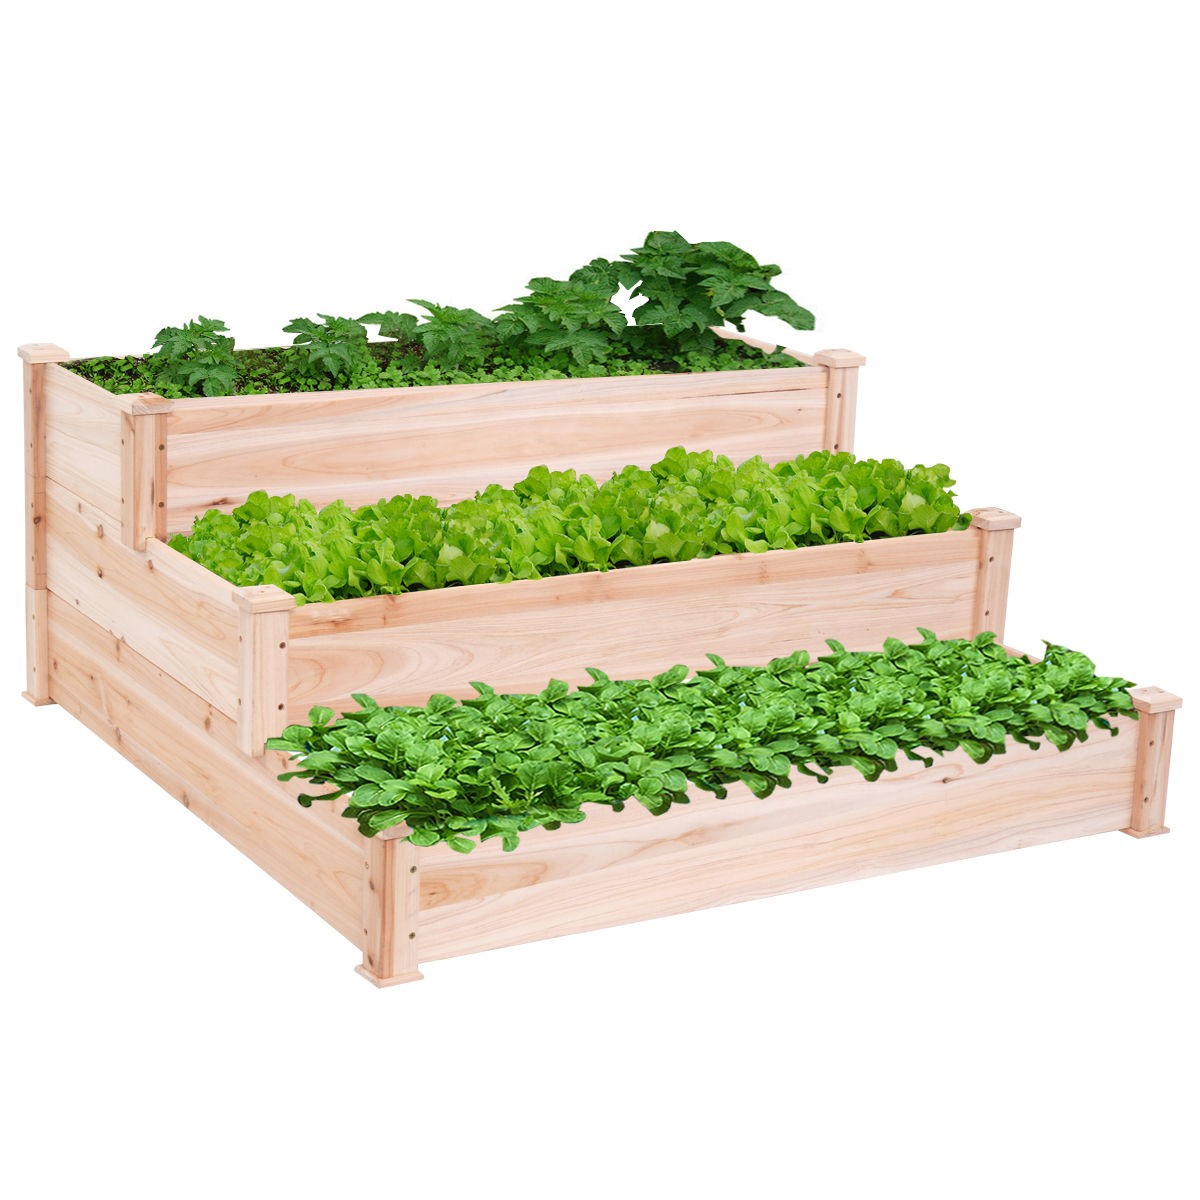 Outdoor wooden raised vegetable garden bed 3 tier elevated for Vegetable garden planter box designs